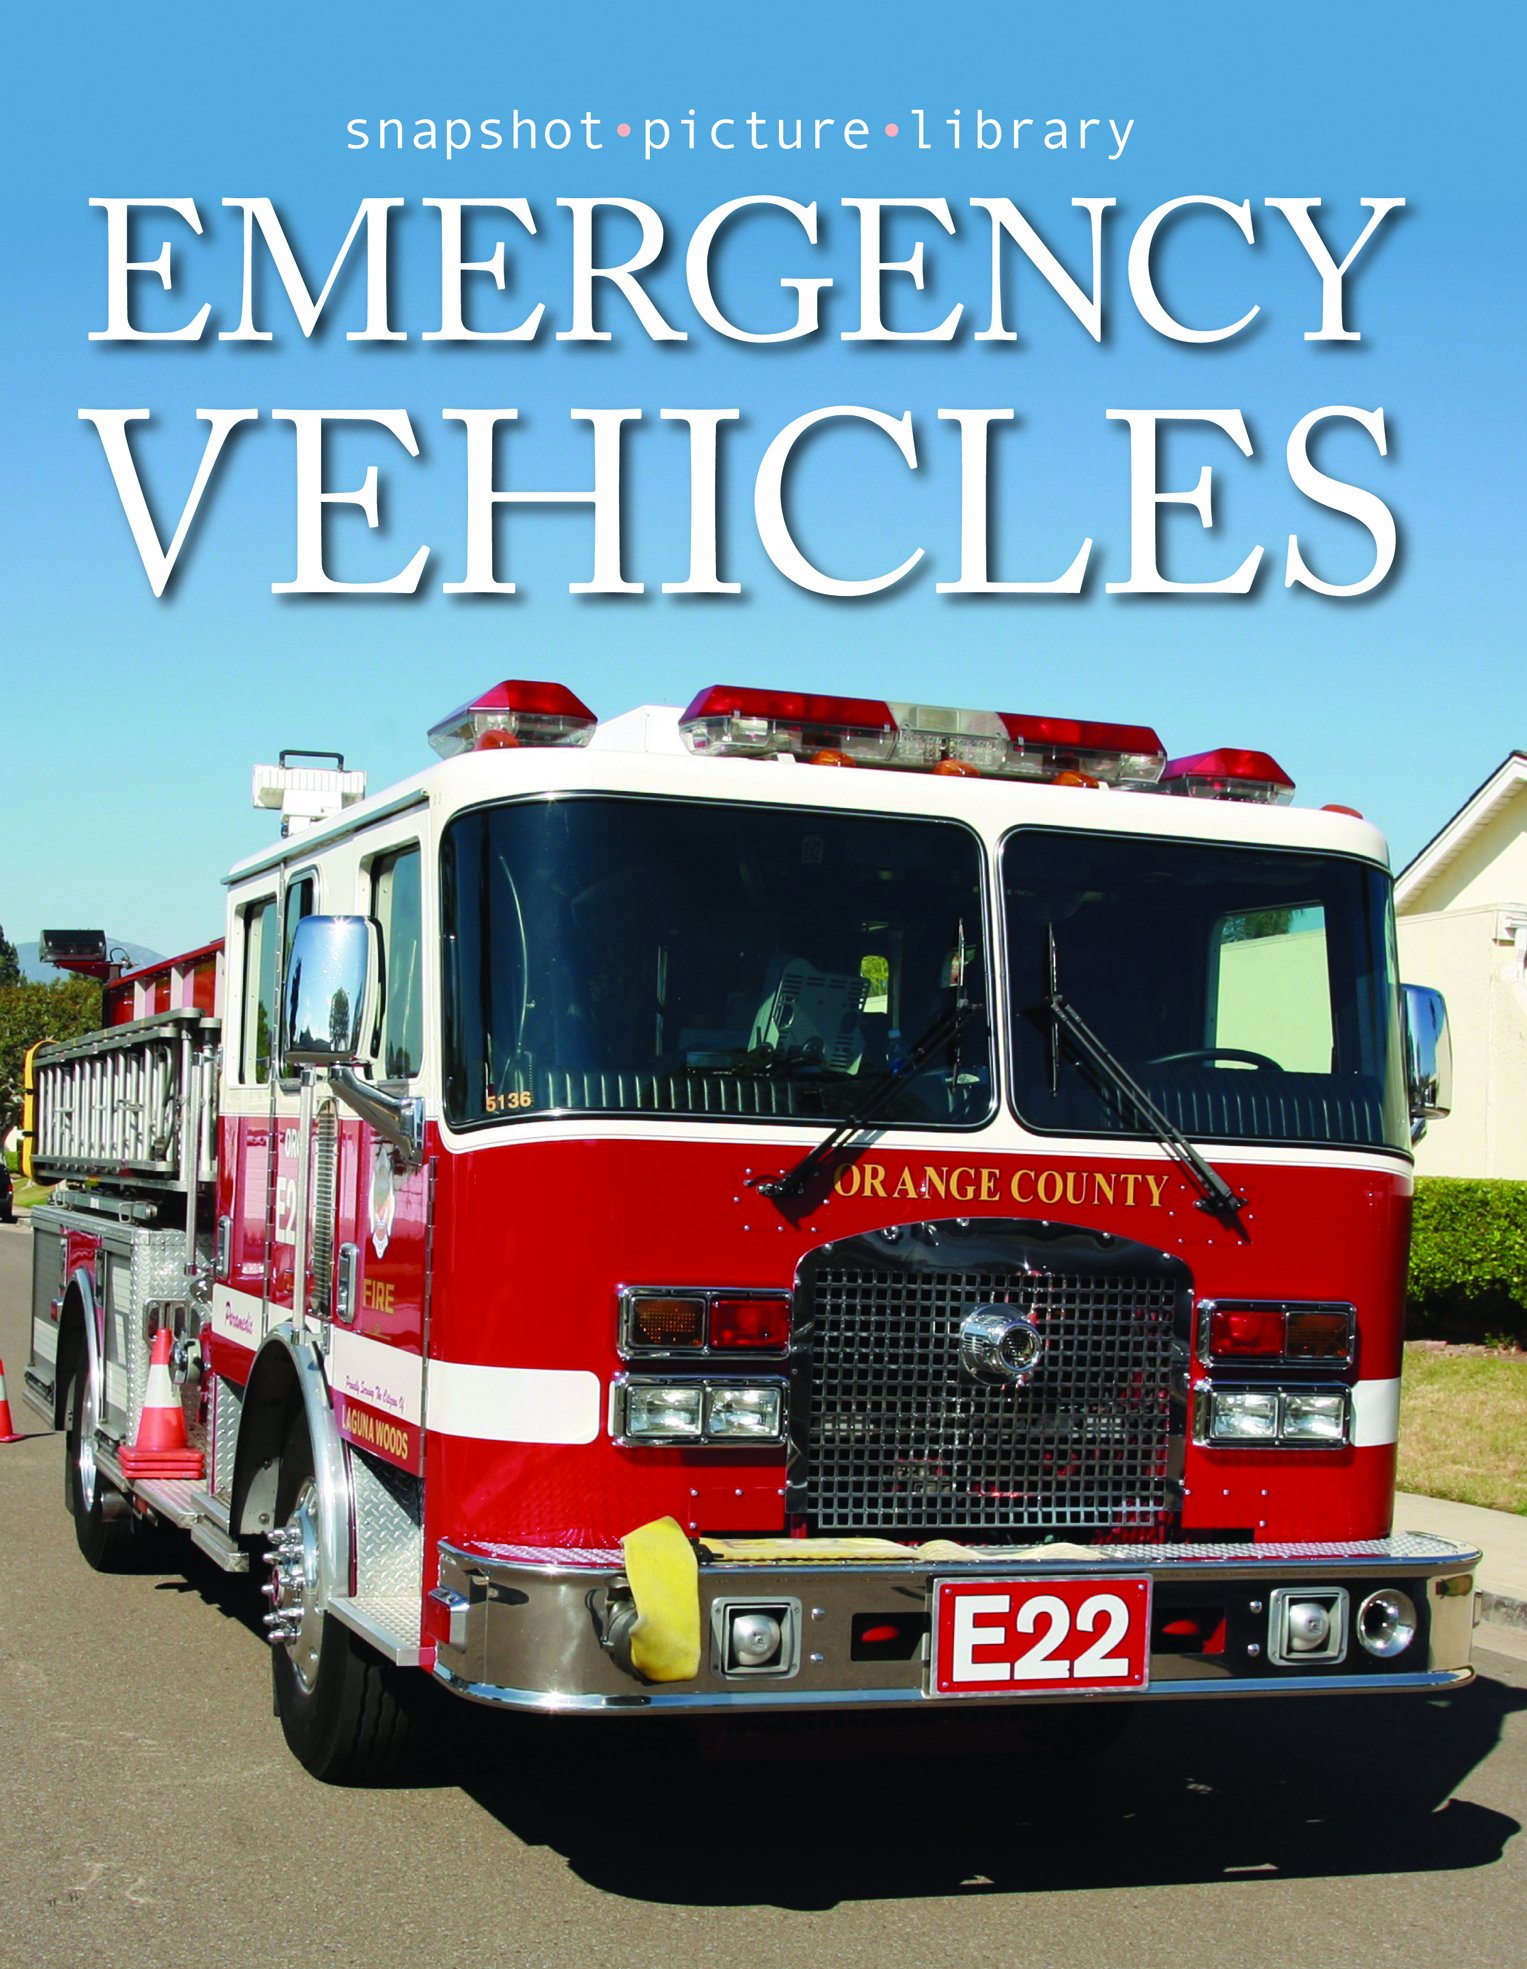 Emergency Vehicles Snapshot Picture Library